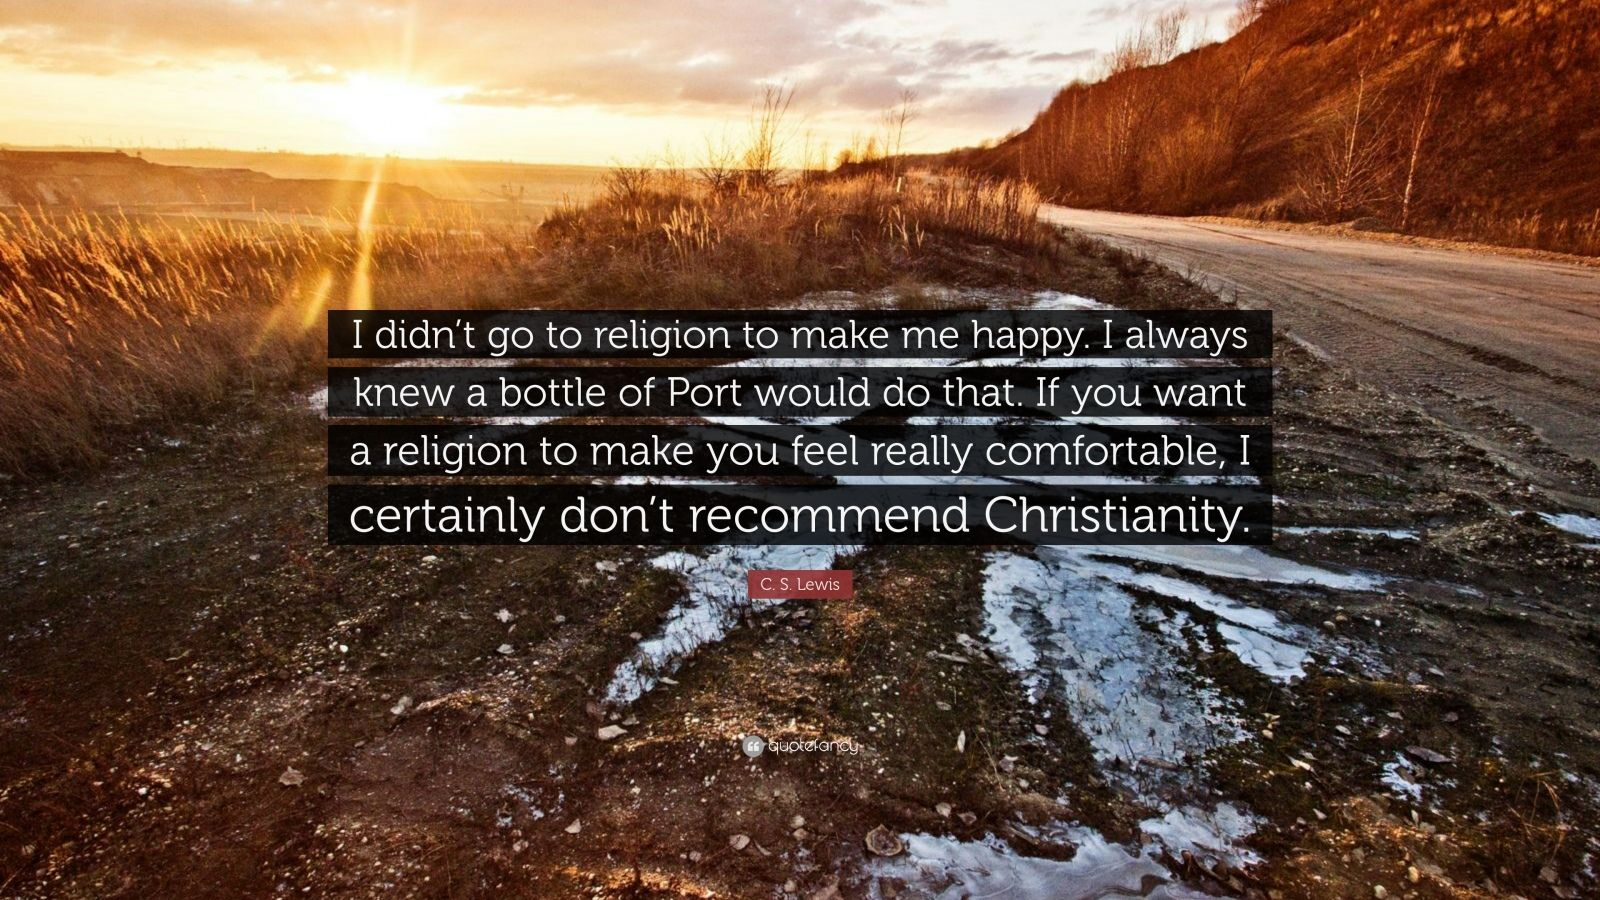 "C. S. Lewis Quote: ""I didn't go to religion to make me happy. I always knew a bottle of Port would do that. If you want a religion to make you feel really comfortable, I certainly don't recommend Christianity."""